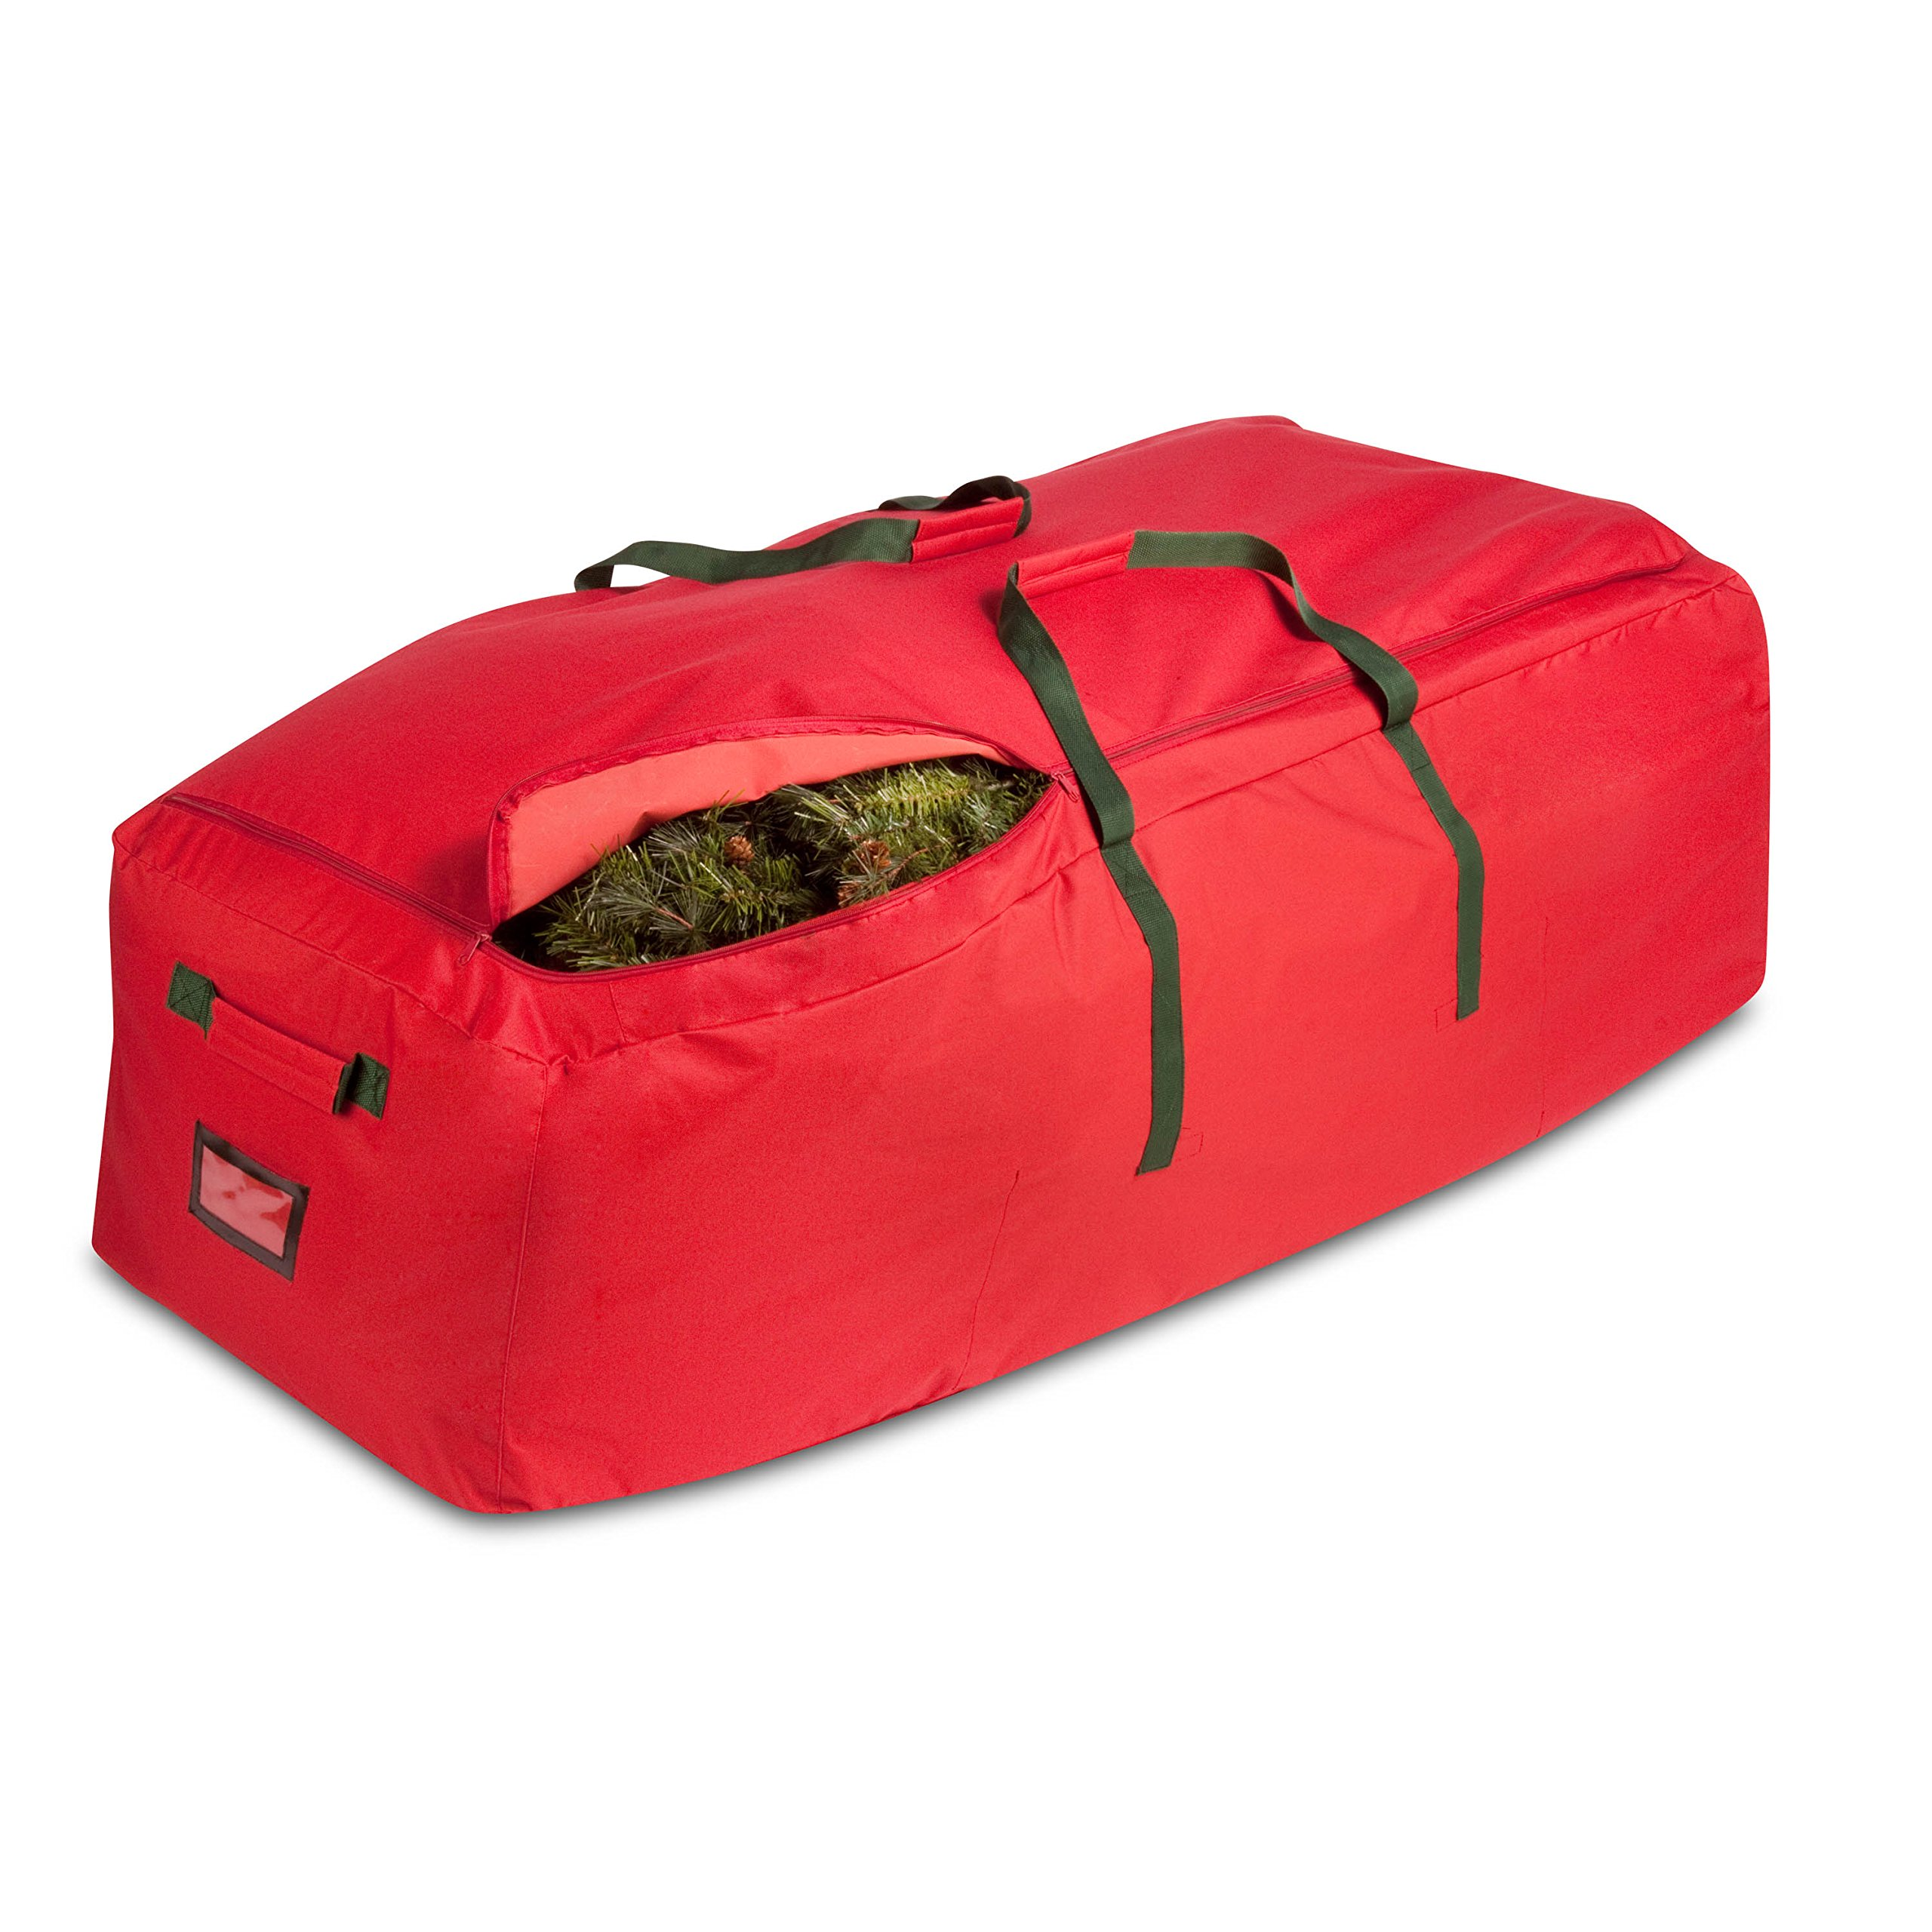 Honey-Can-Do SFT-02316 Canvas Artificial Tree Rolling Storage Bag